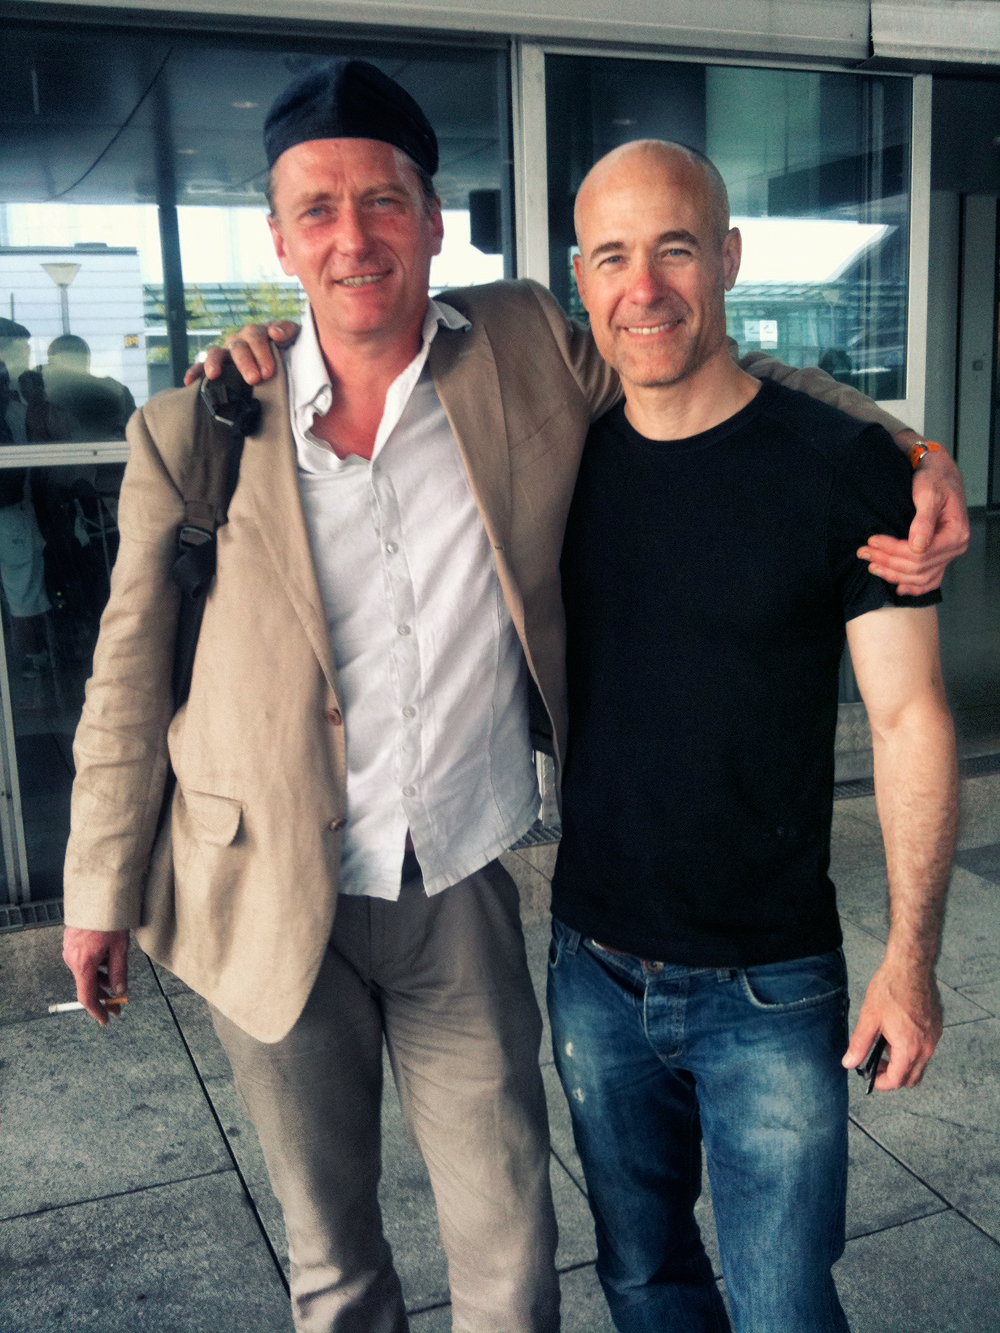 Mont and Geordie at the airport in 2013